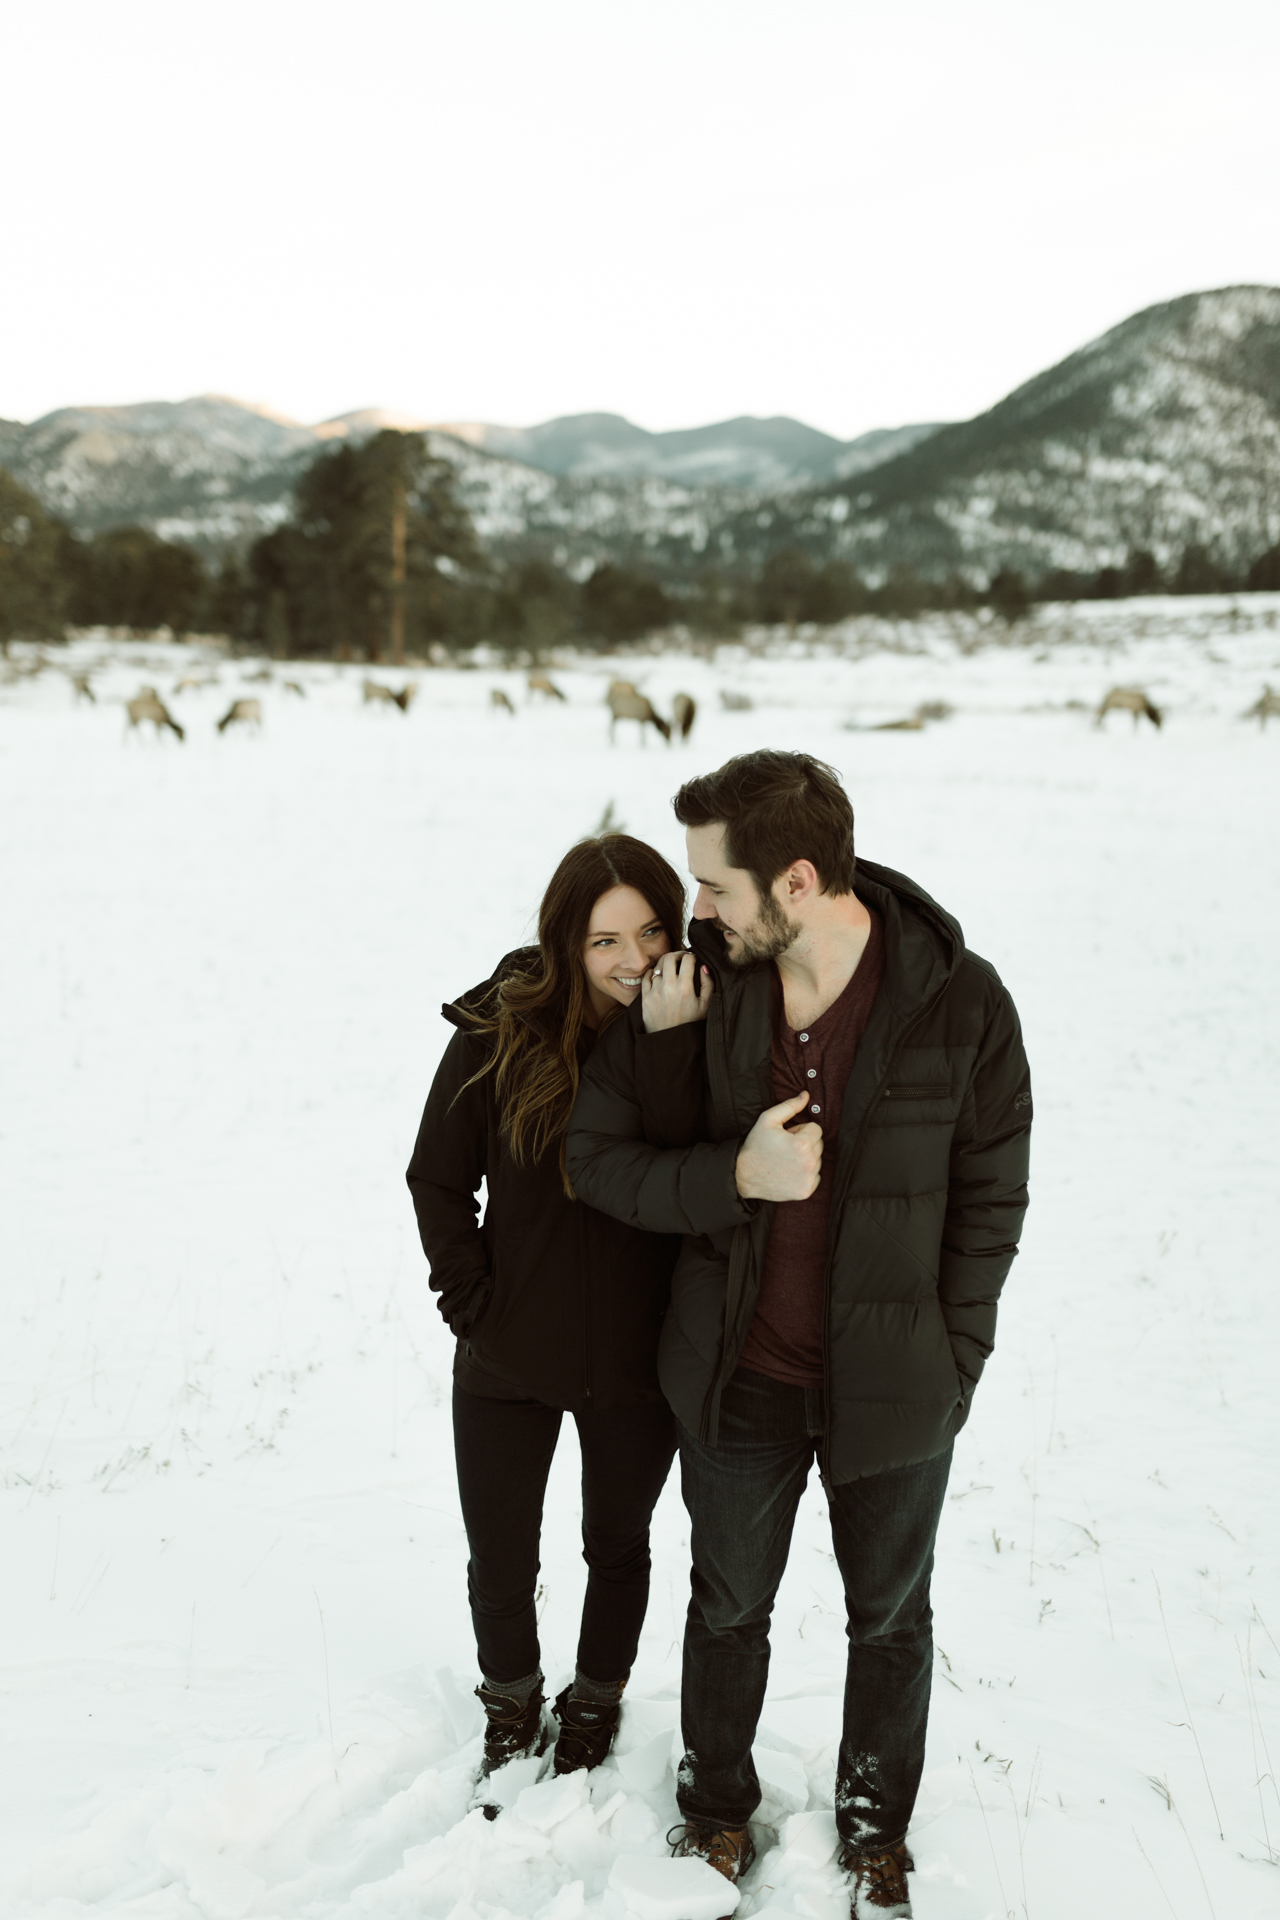 winter-rocky-mountain-national-park-engagements-re-7.jpg